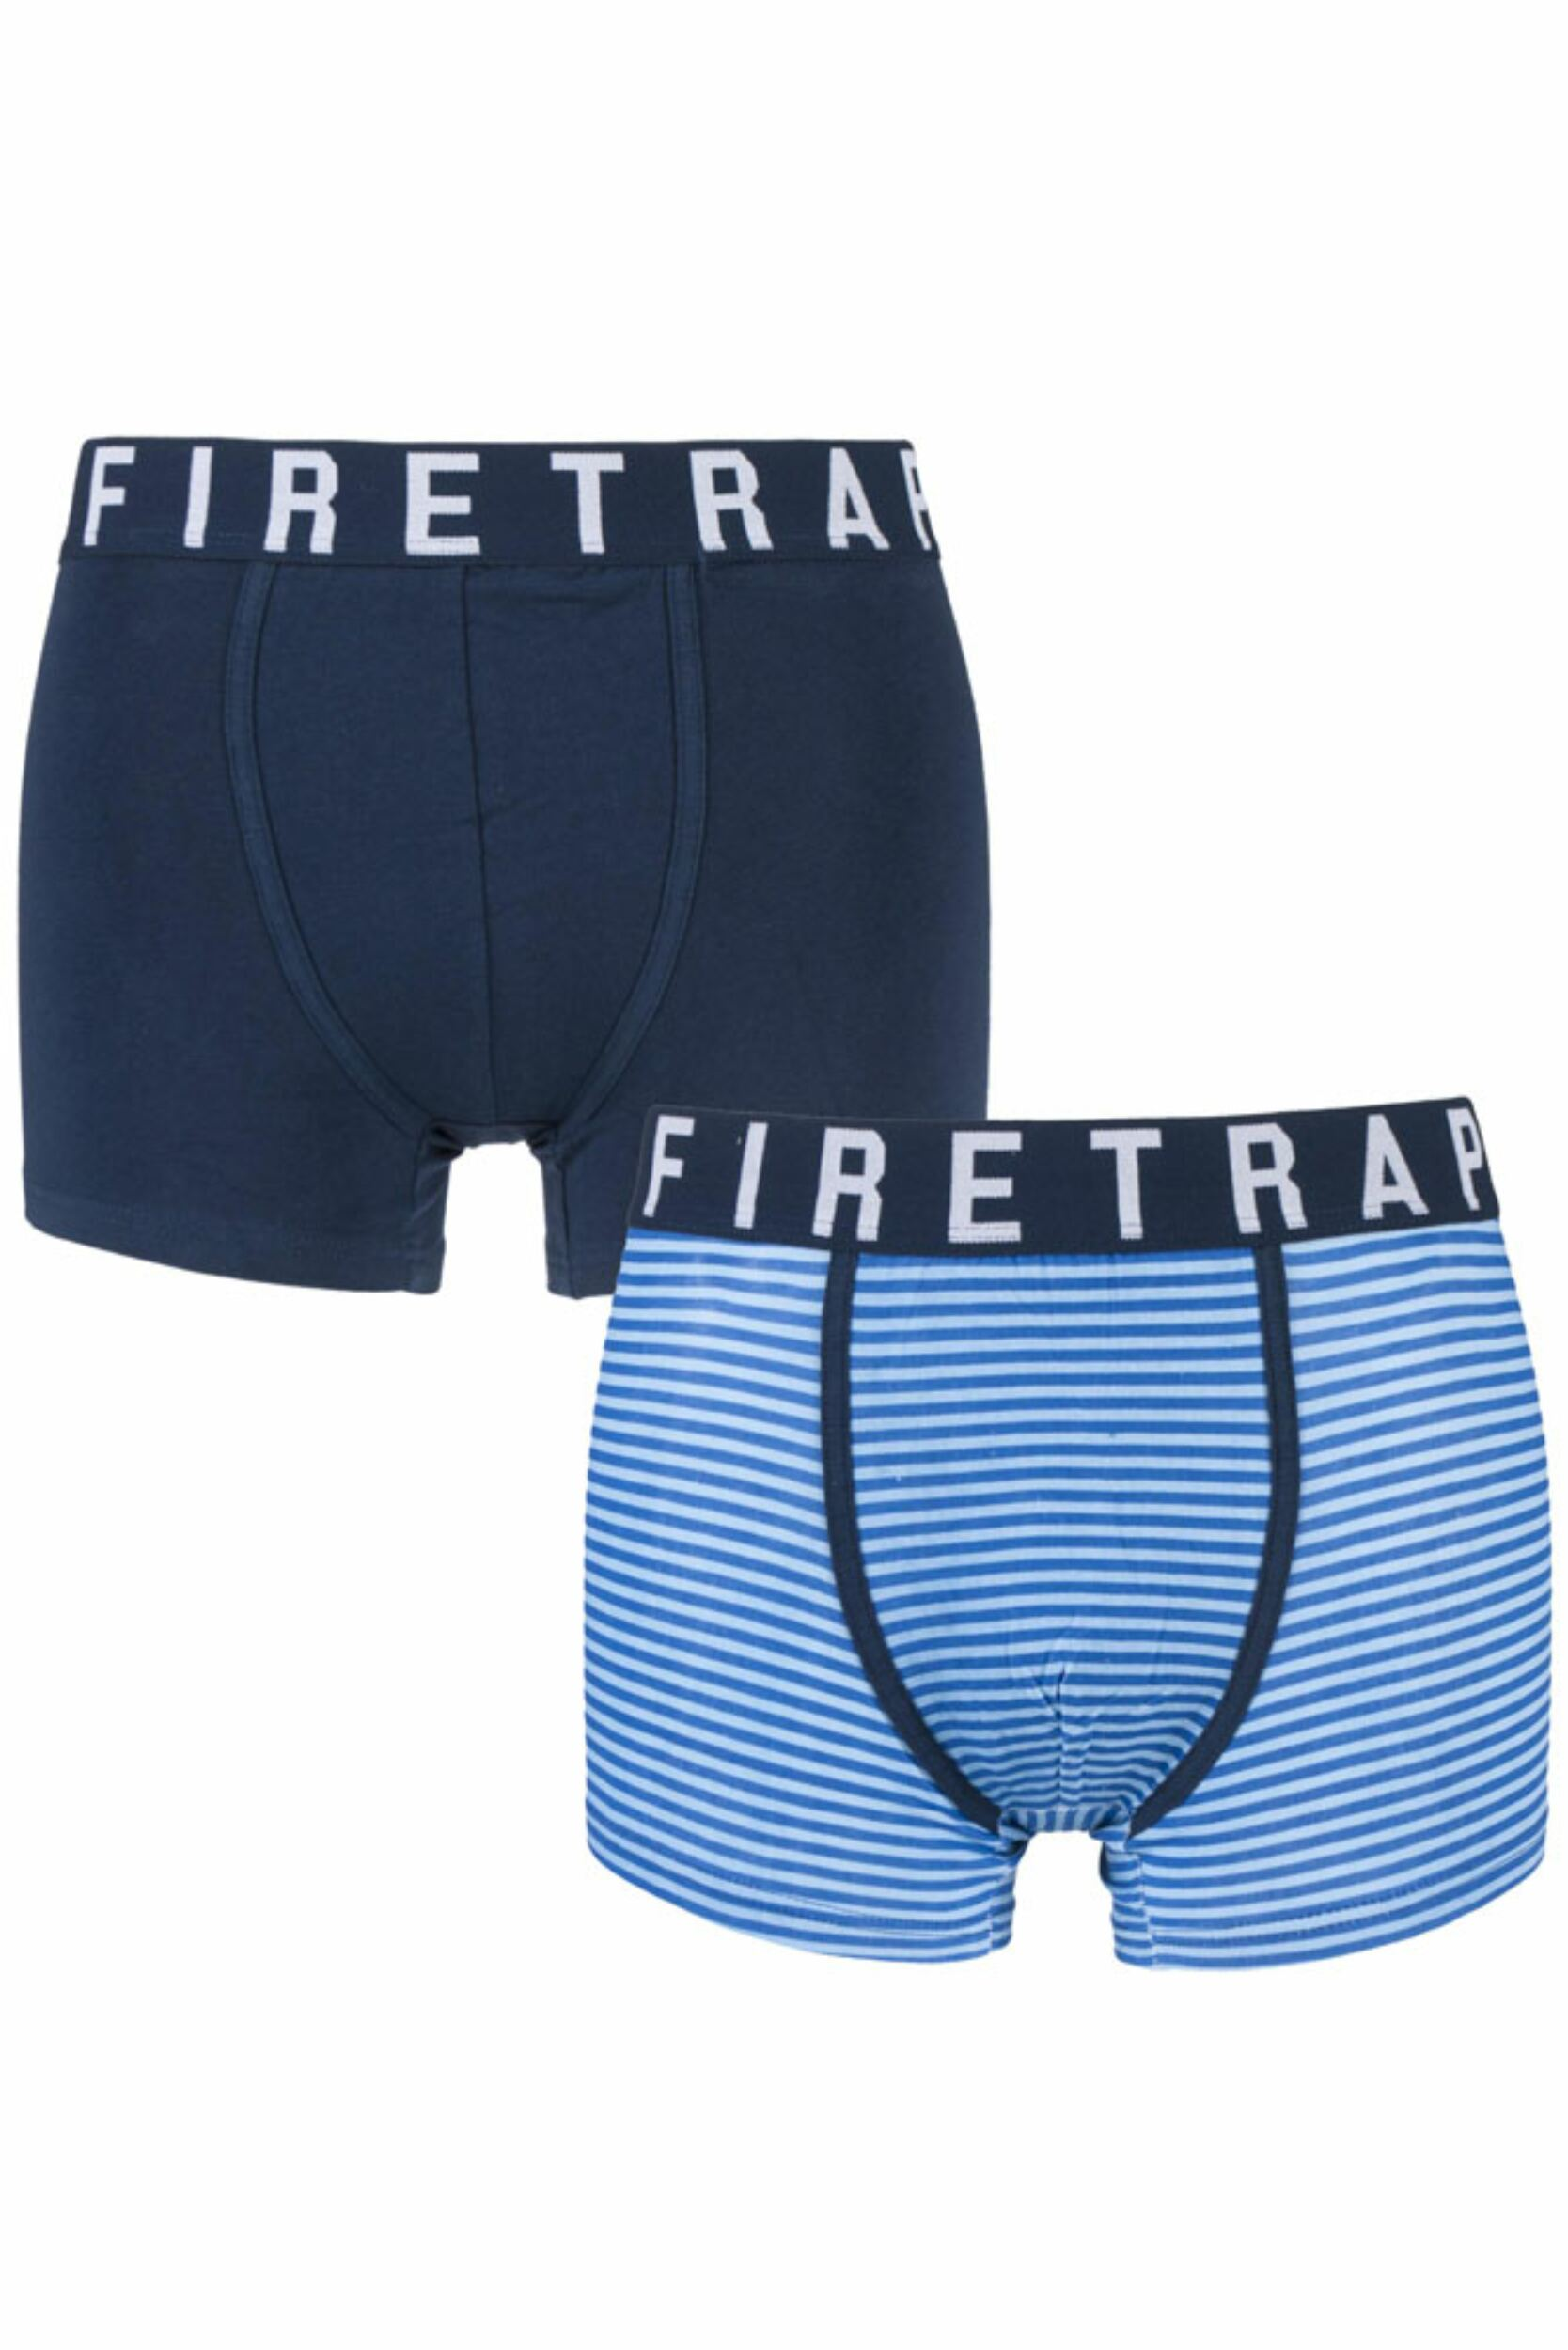 Image of Mens 2 Pack Firetrap Plain and Striped Cotton Boxer Shorts